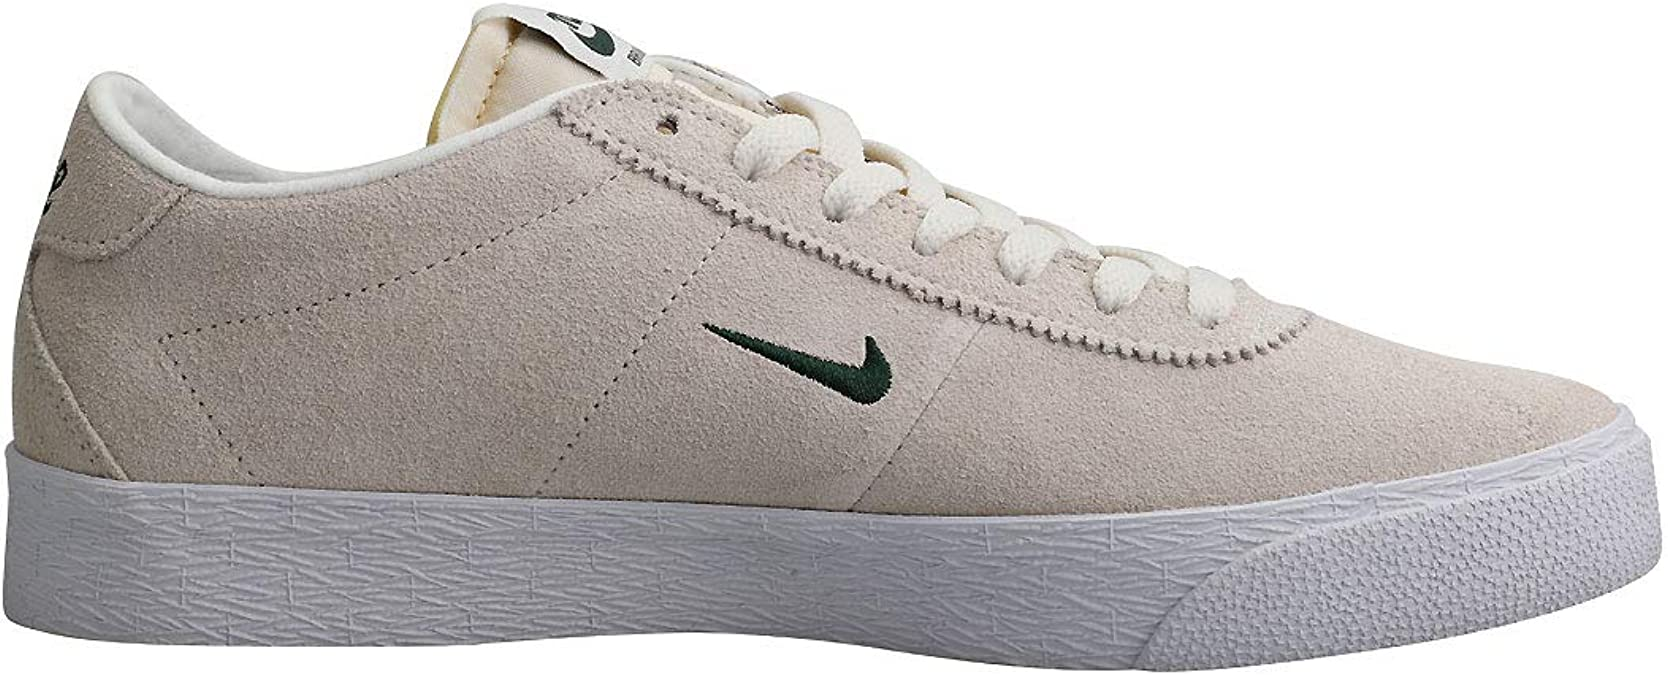 Nike SB Zoom Bruin, Chaussures de Fitness Homme, Multicolore